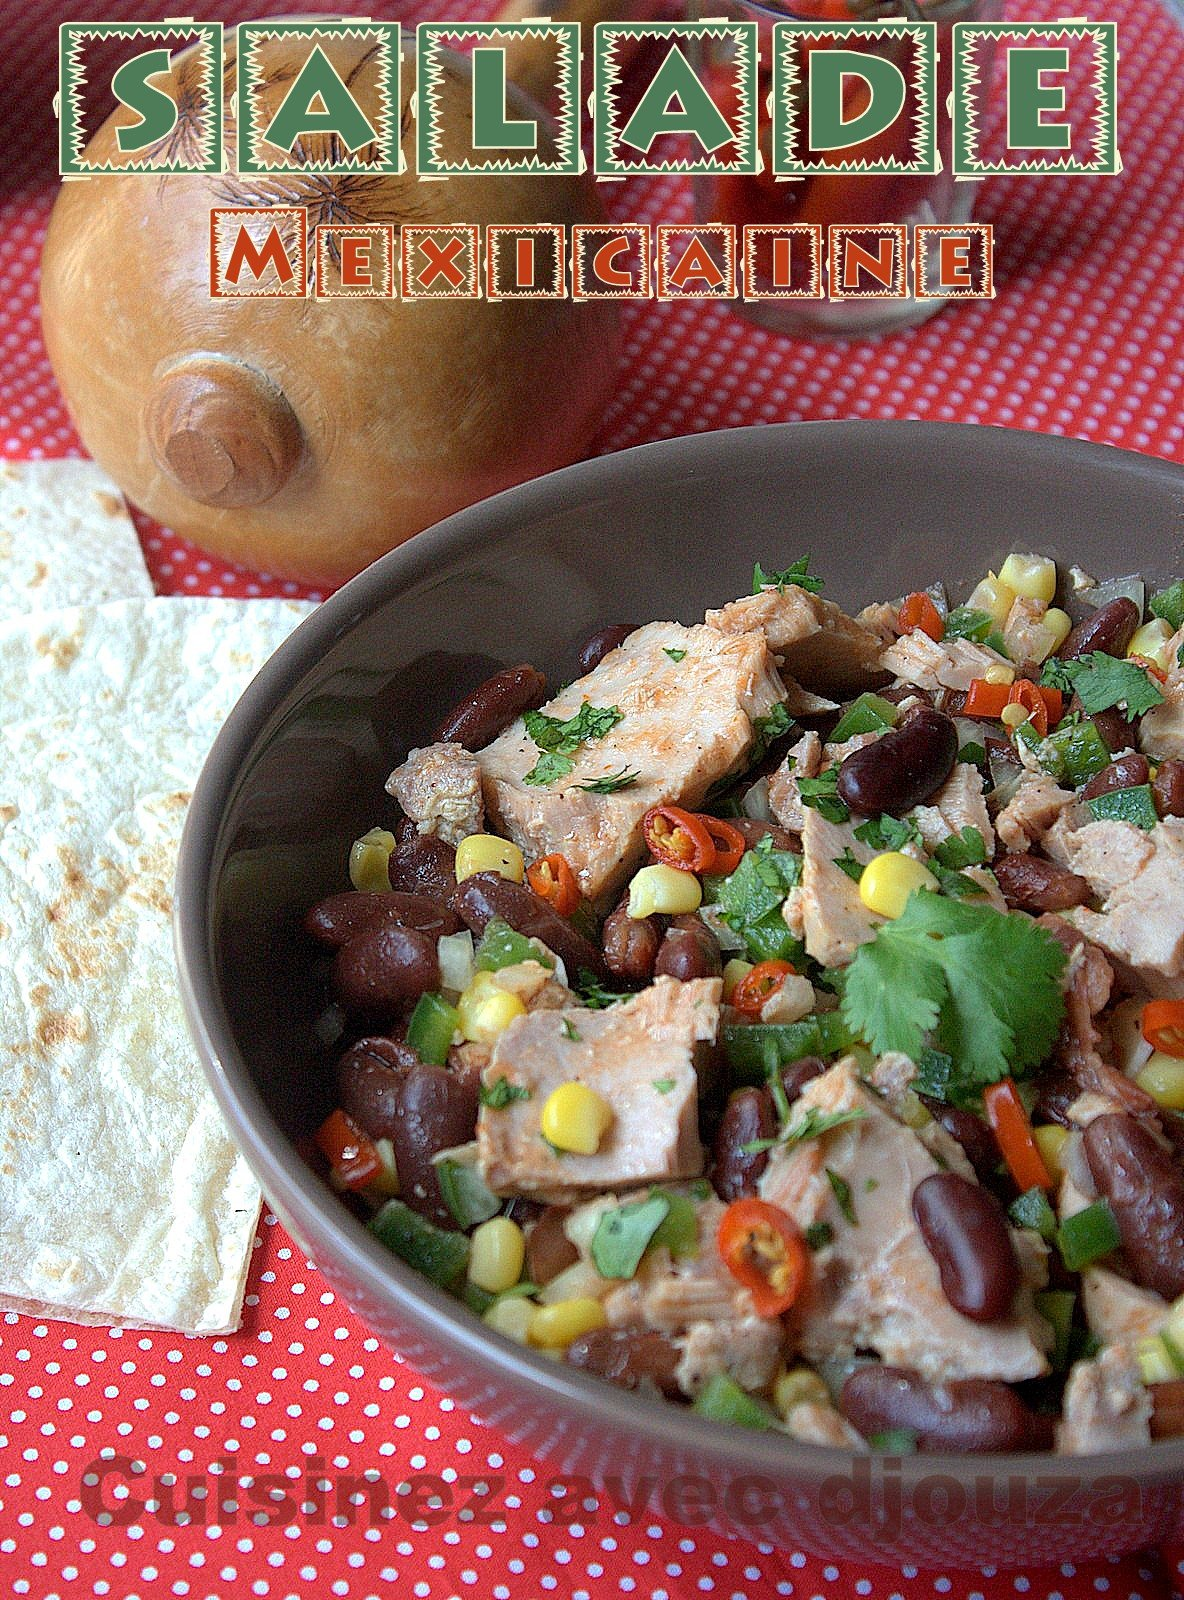 Salade aux haricots rouges mexicains